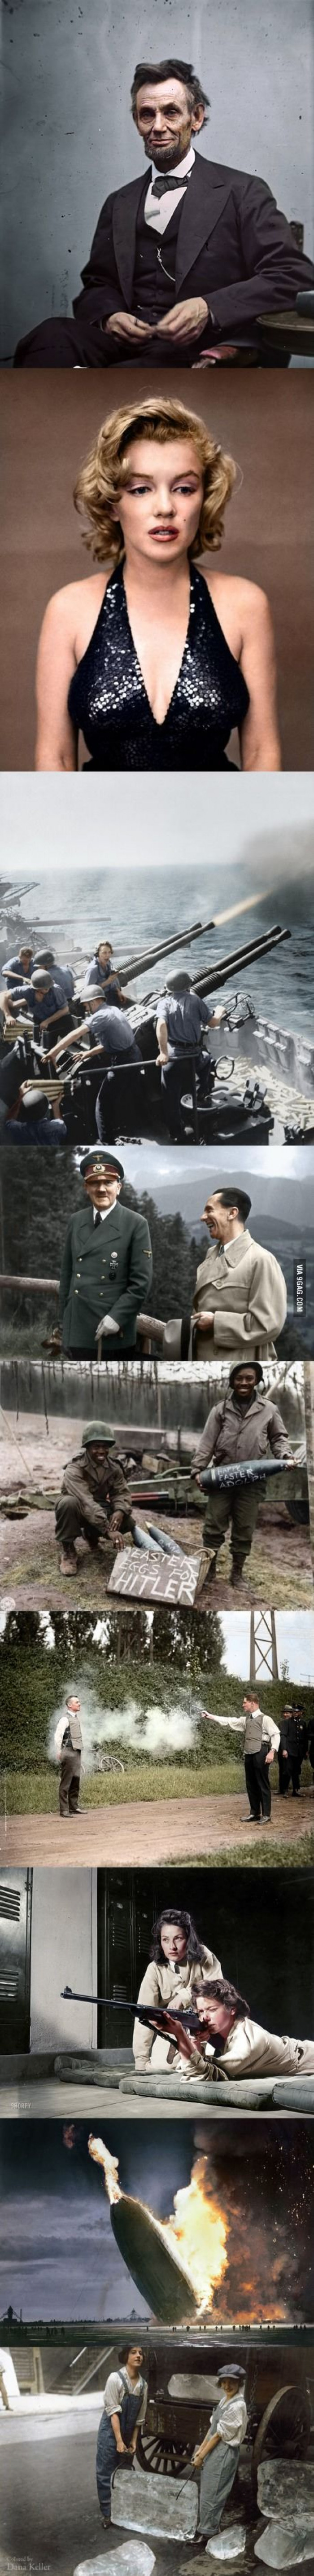 9 Historical Photographs Colorized To Show How They Would Look In Color